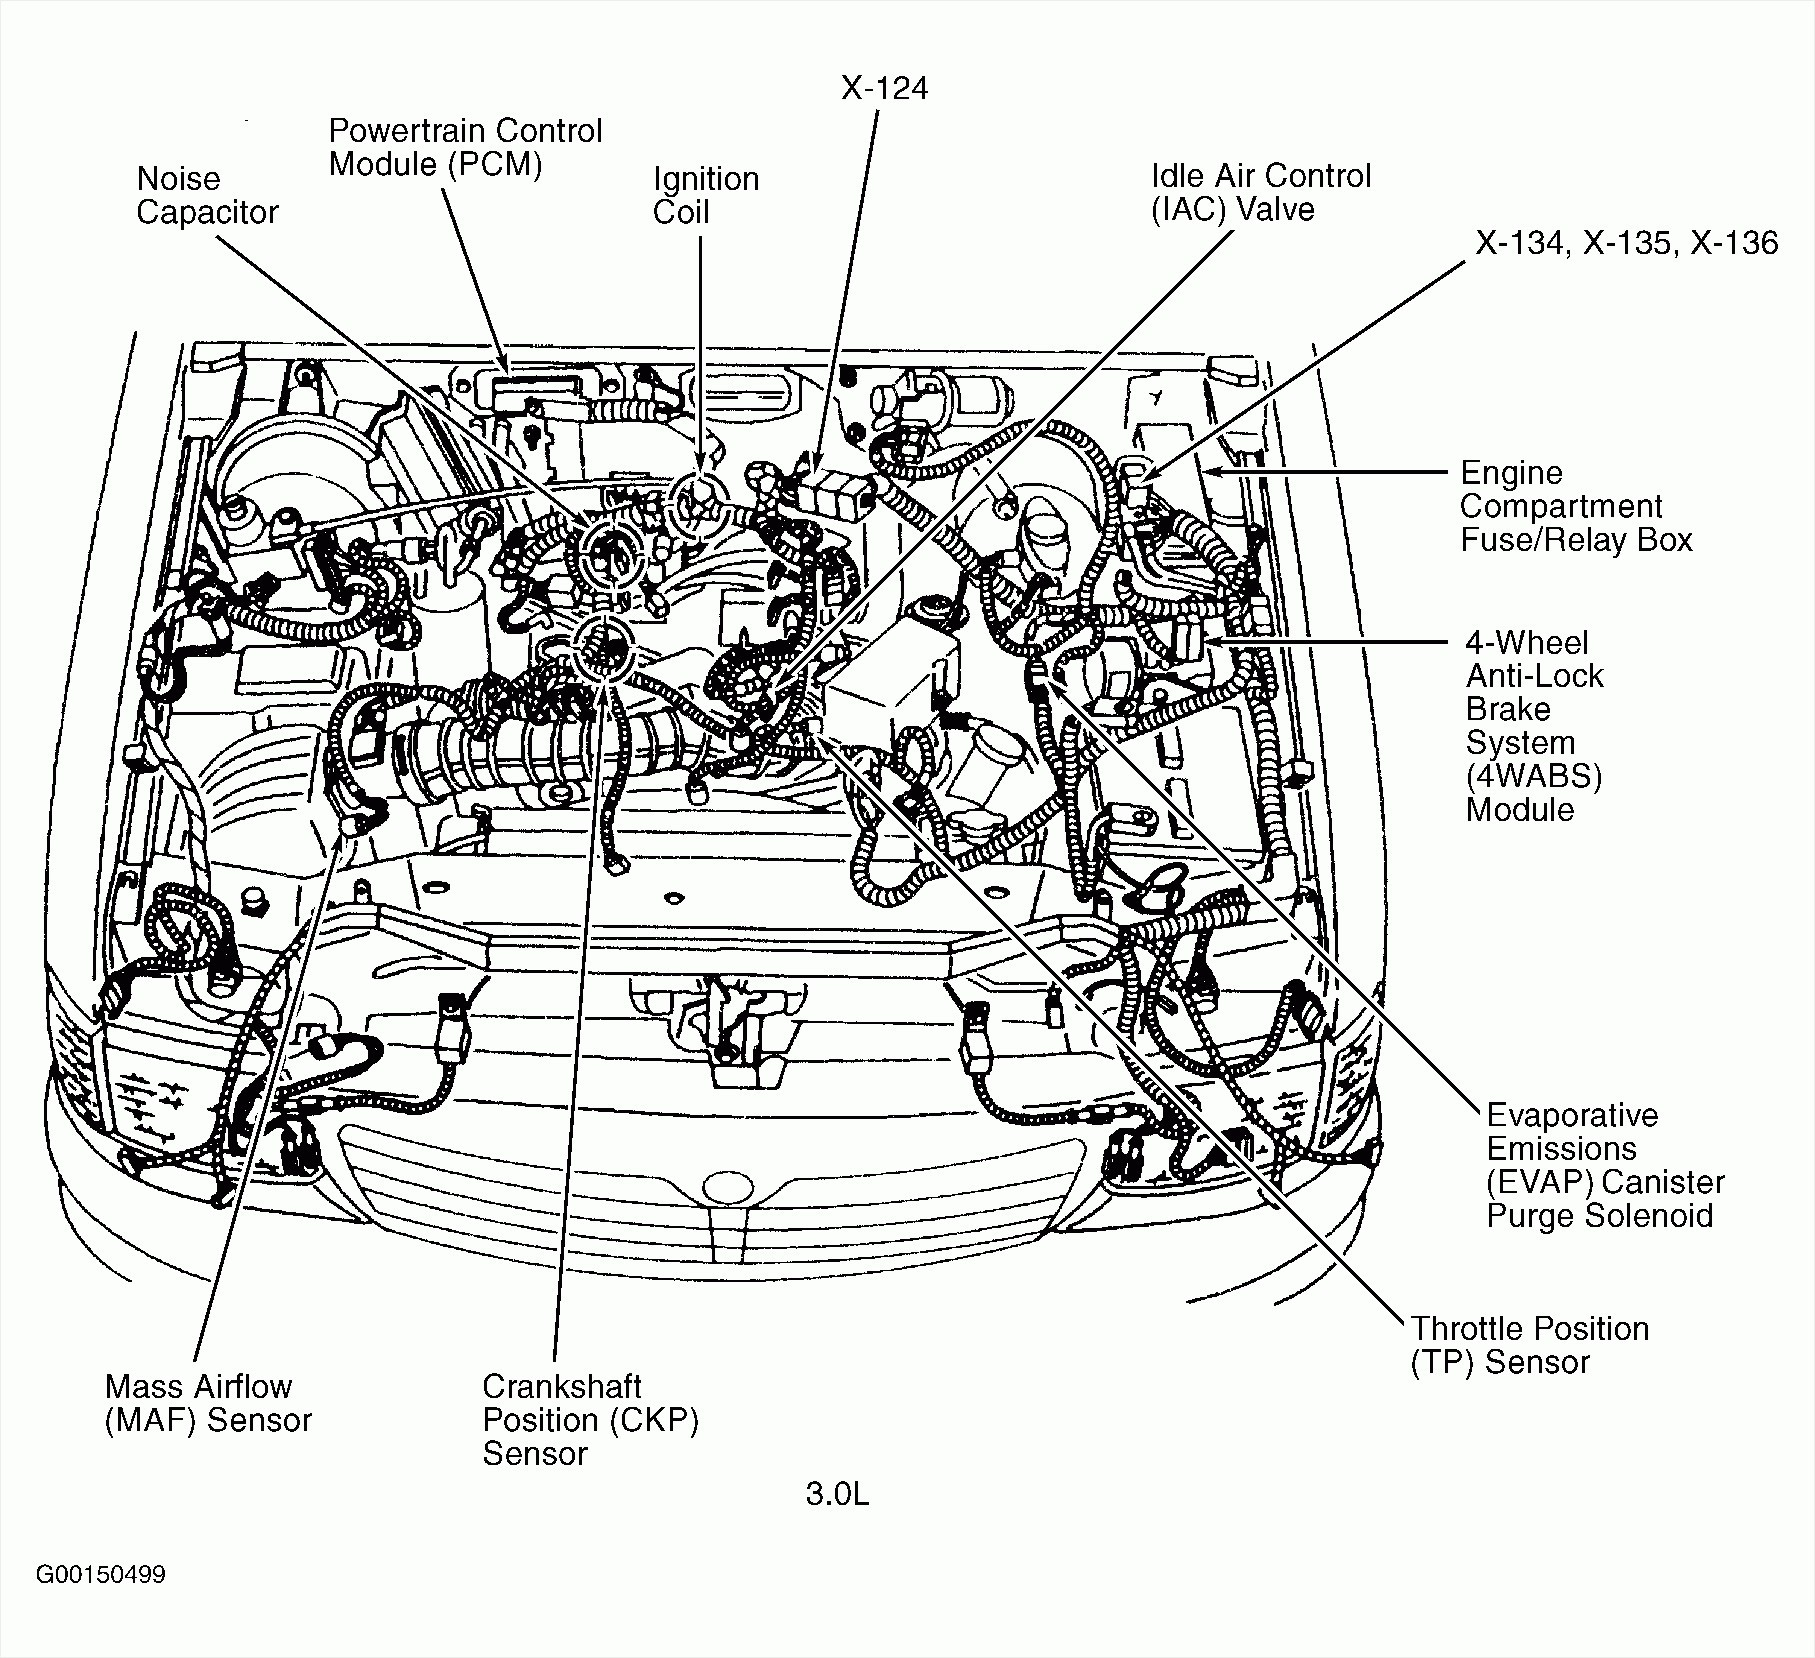 1999 3400 v6 engine diagram wiring diagram data rh 11 5 20 reisen fuer meister de